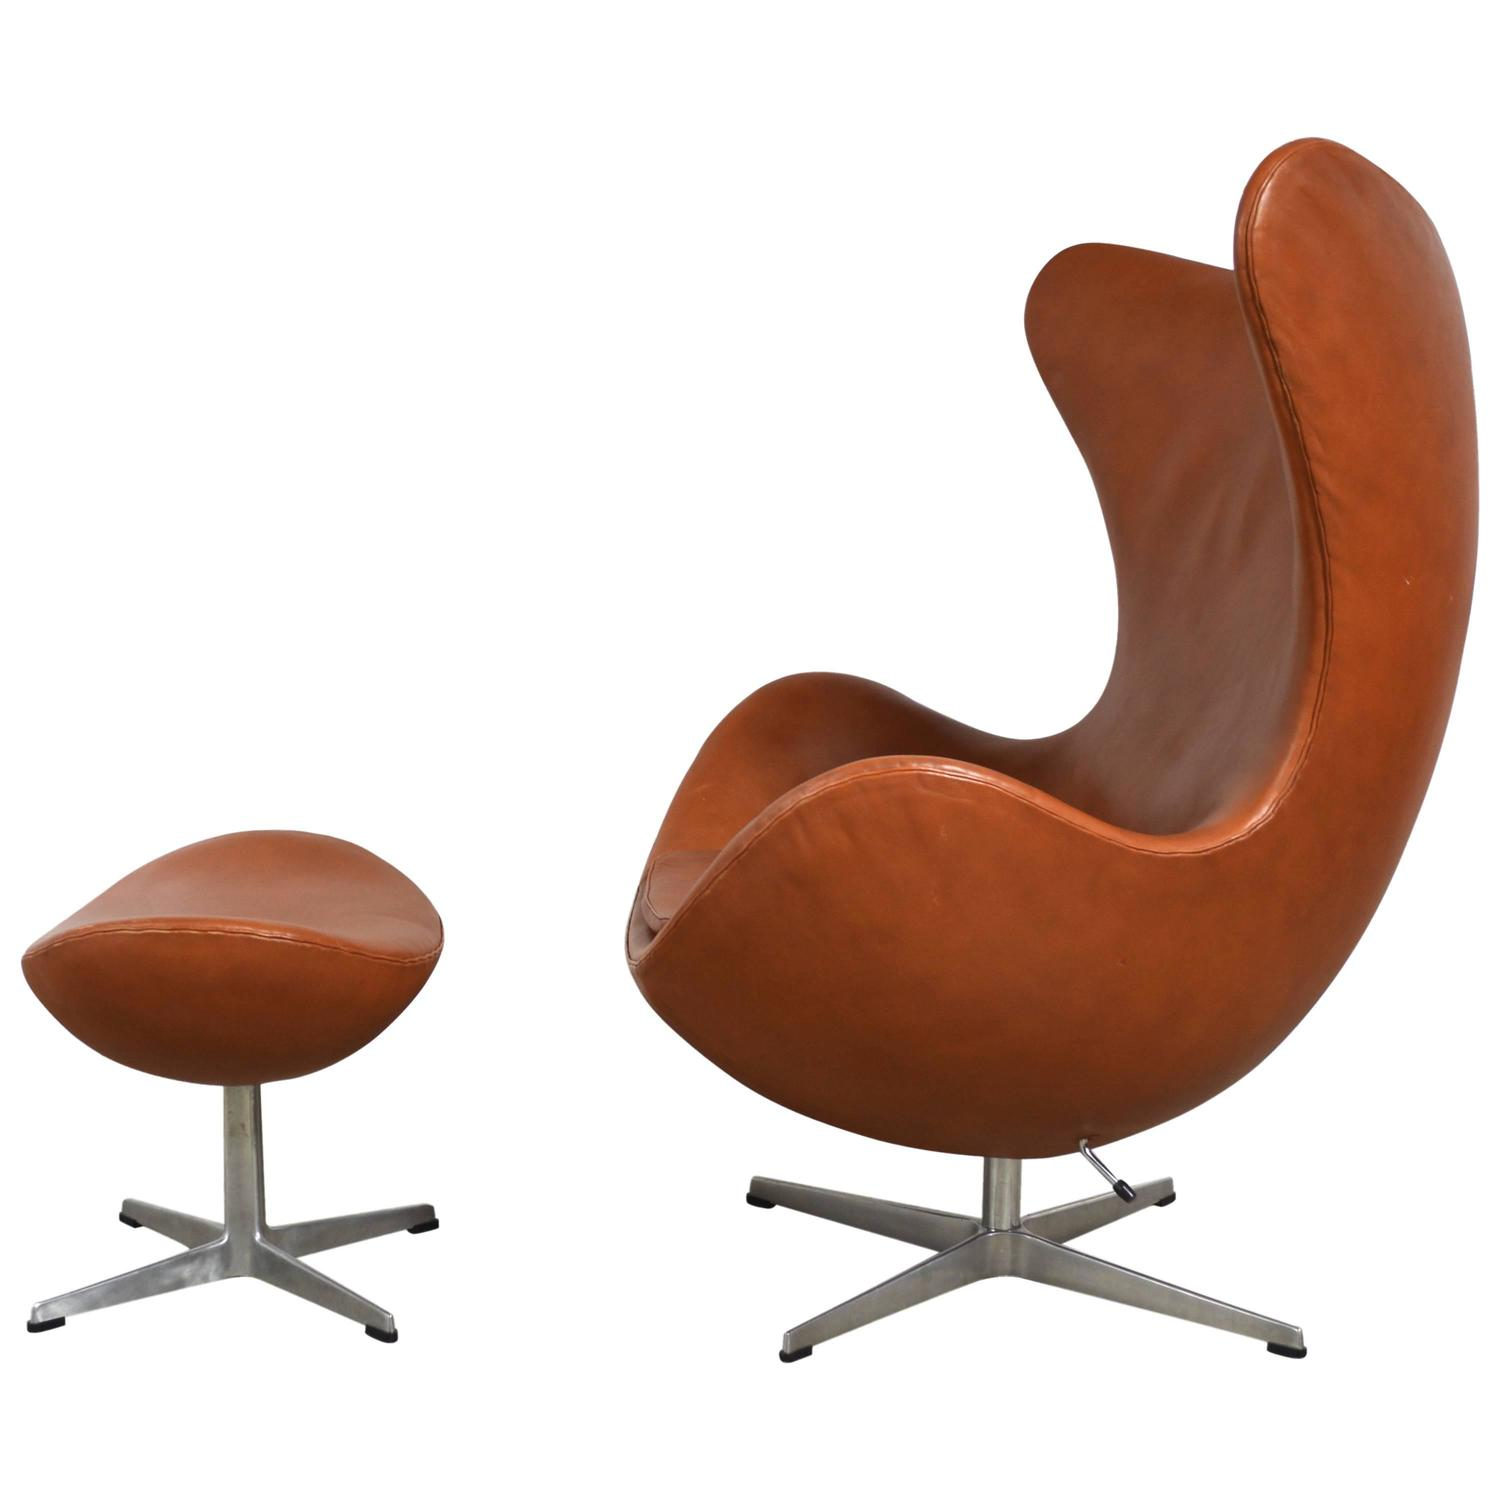 Pouf Design Egg Pouf Jacobsen : Arne jacobsen leather egg chair and ottoman at stdibs